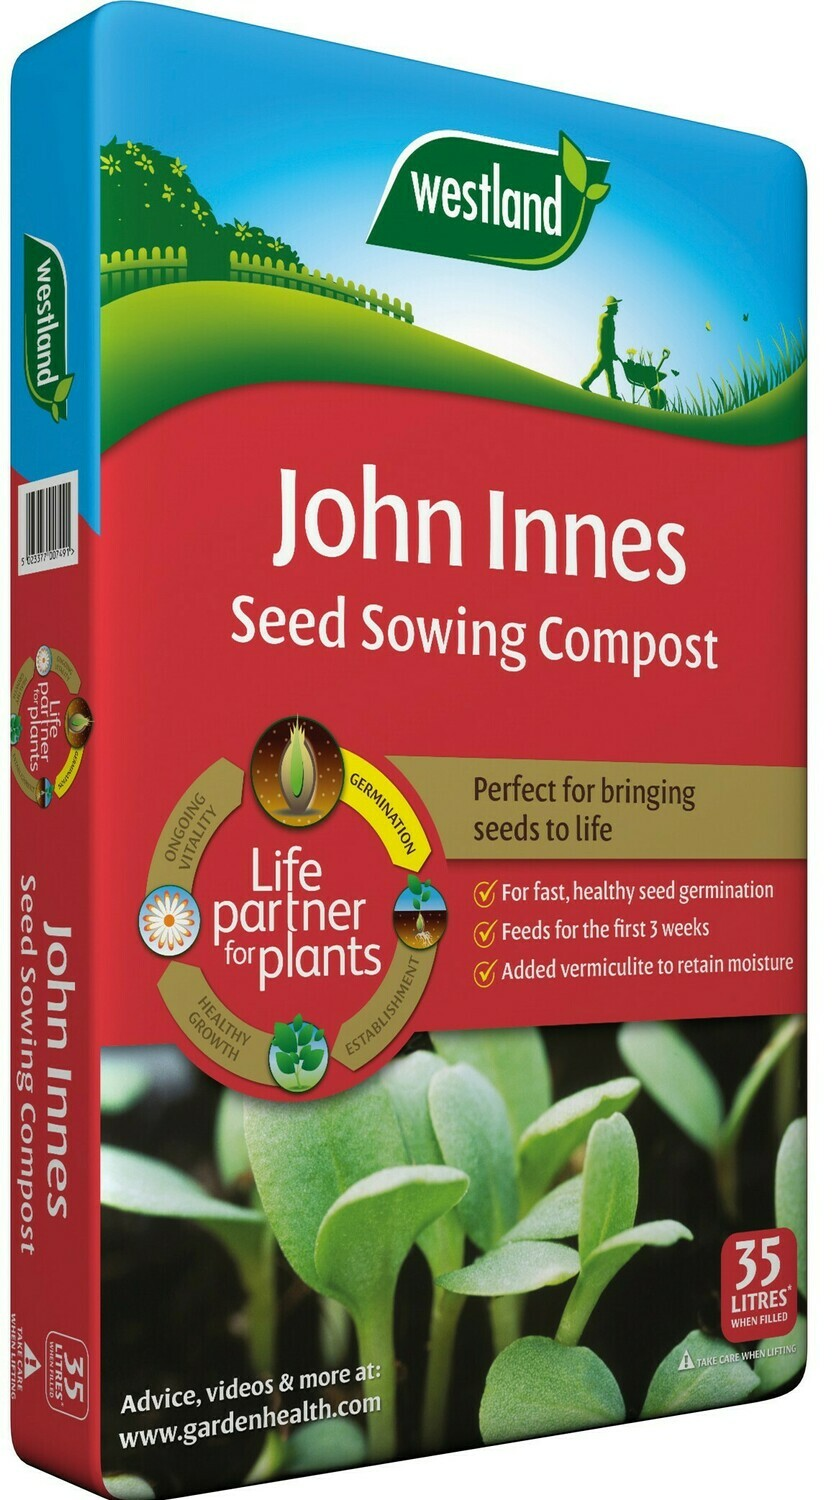 35lt John Innes Seed Sowing Compost